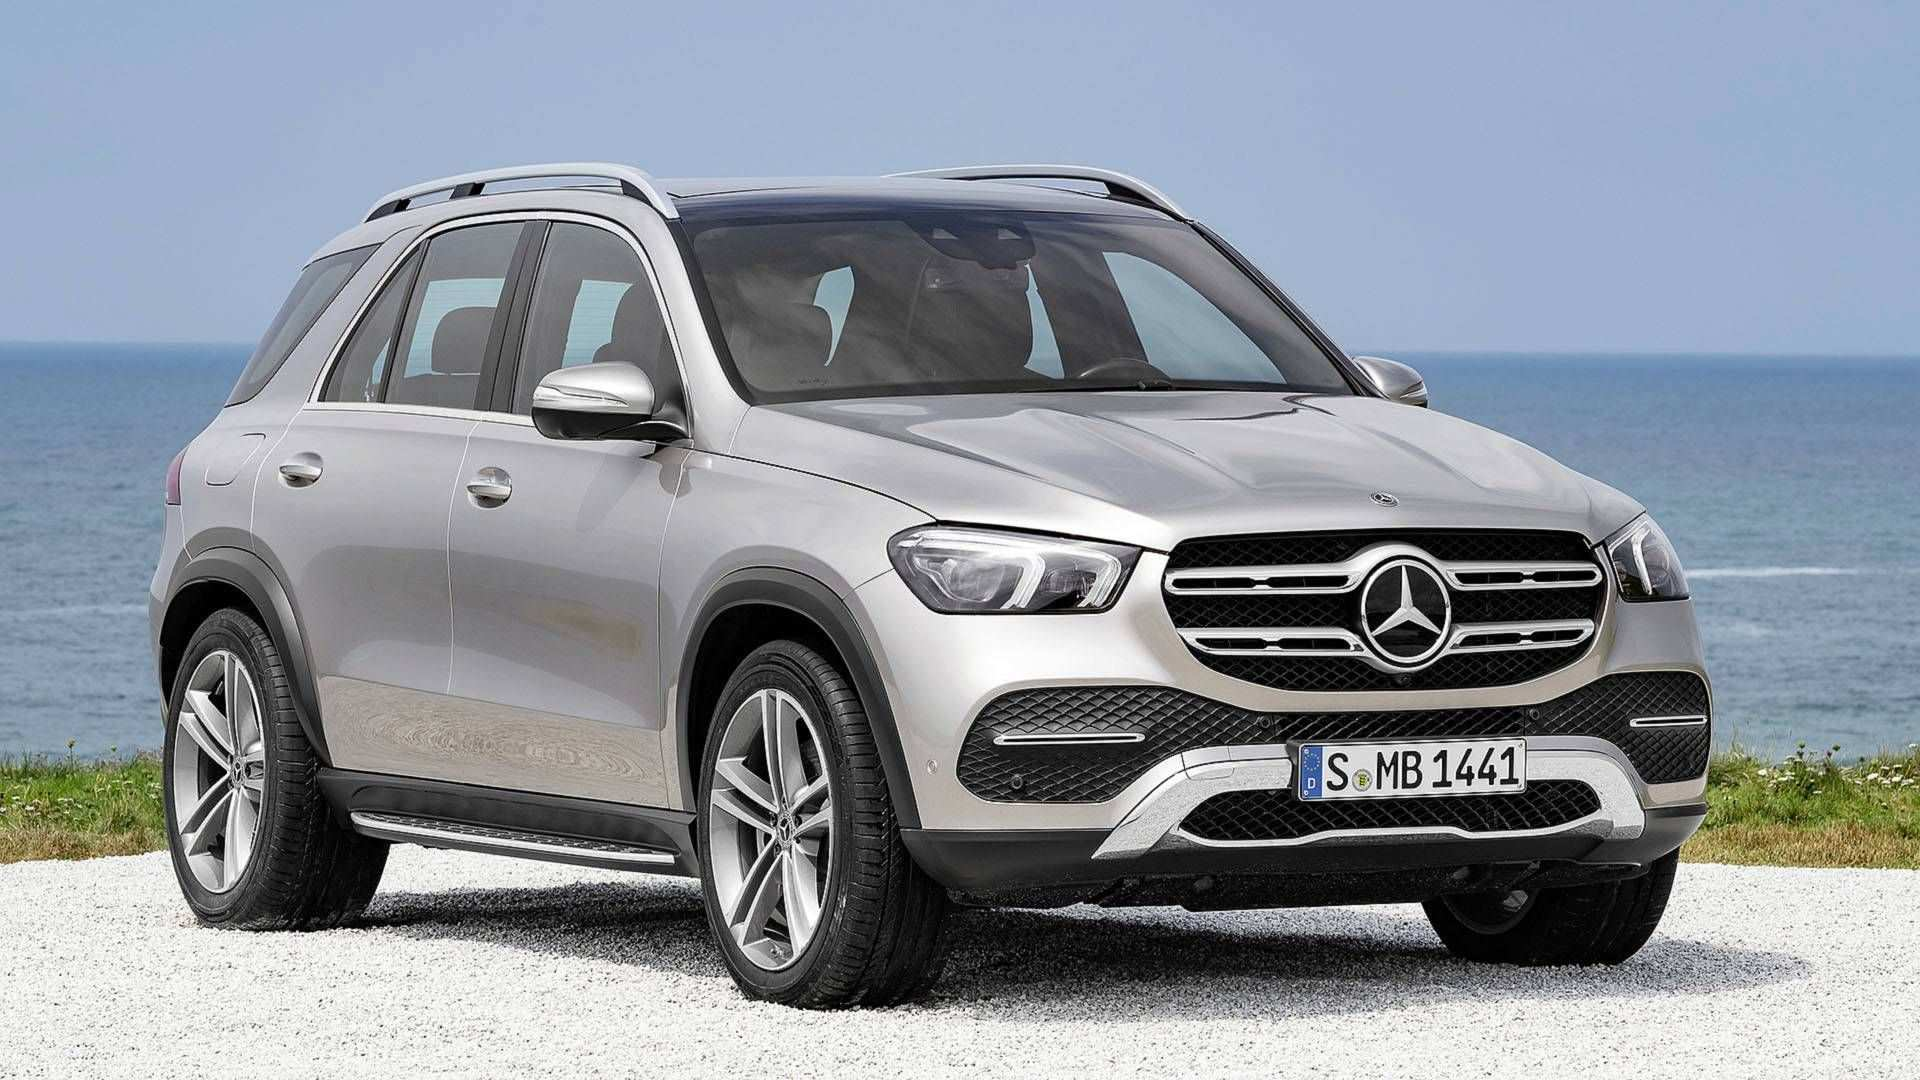 94 All New 2020 Mercedes ML Class 400 Rumors with 2020 Mercedes ML Class 400